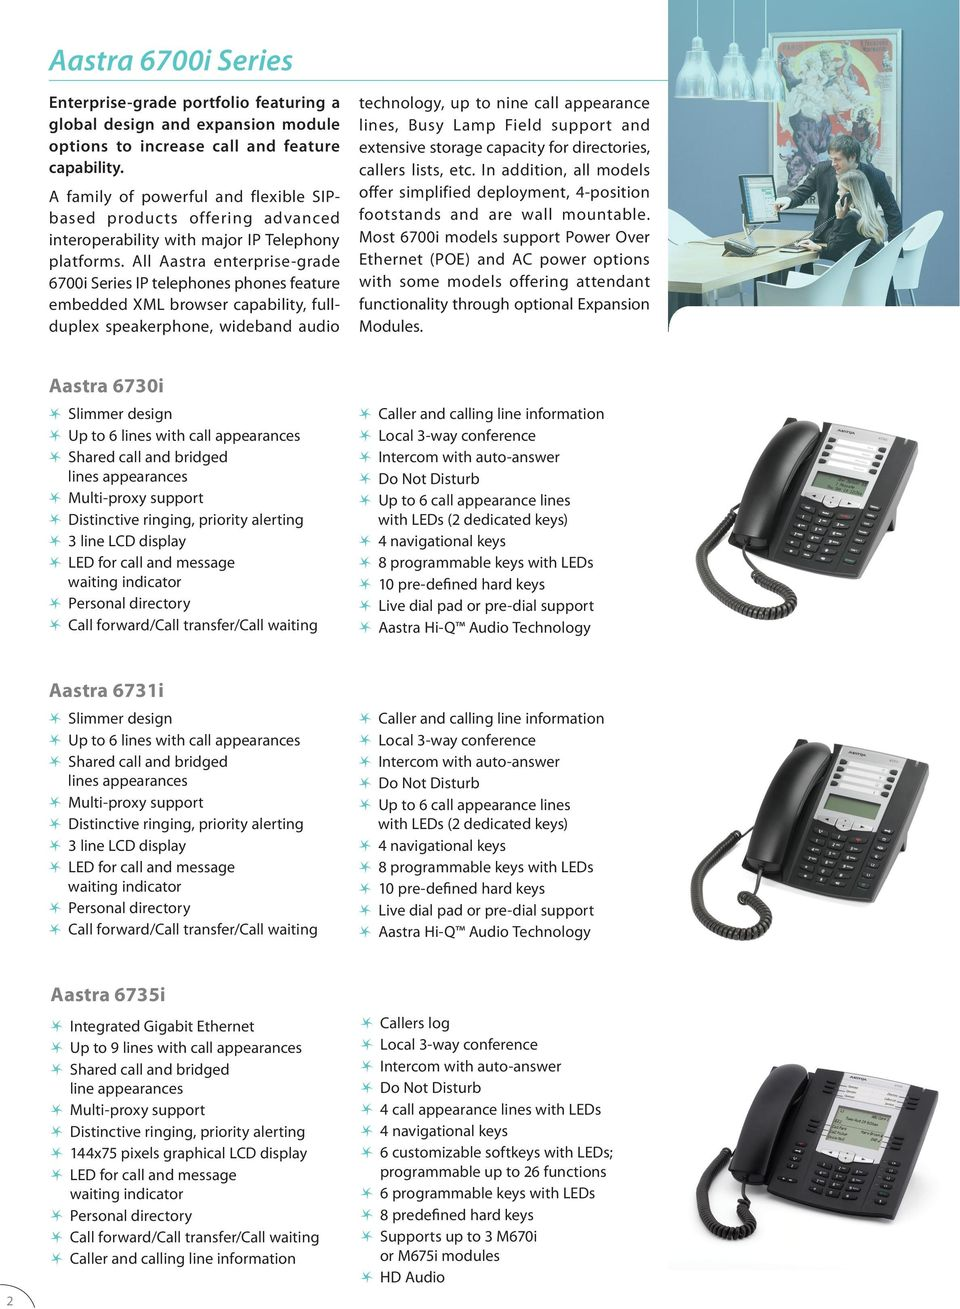 All Aastra enterprise-grade 6700i Series IP telephones phones feature embedded XML browser capability, fullduplex speakerphone, wideband audio technology, up to nine call appearance lines, Busy Lamp